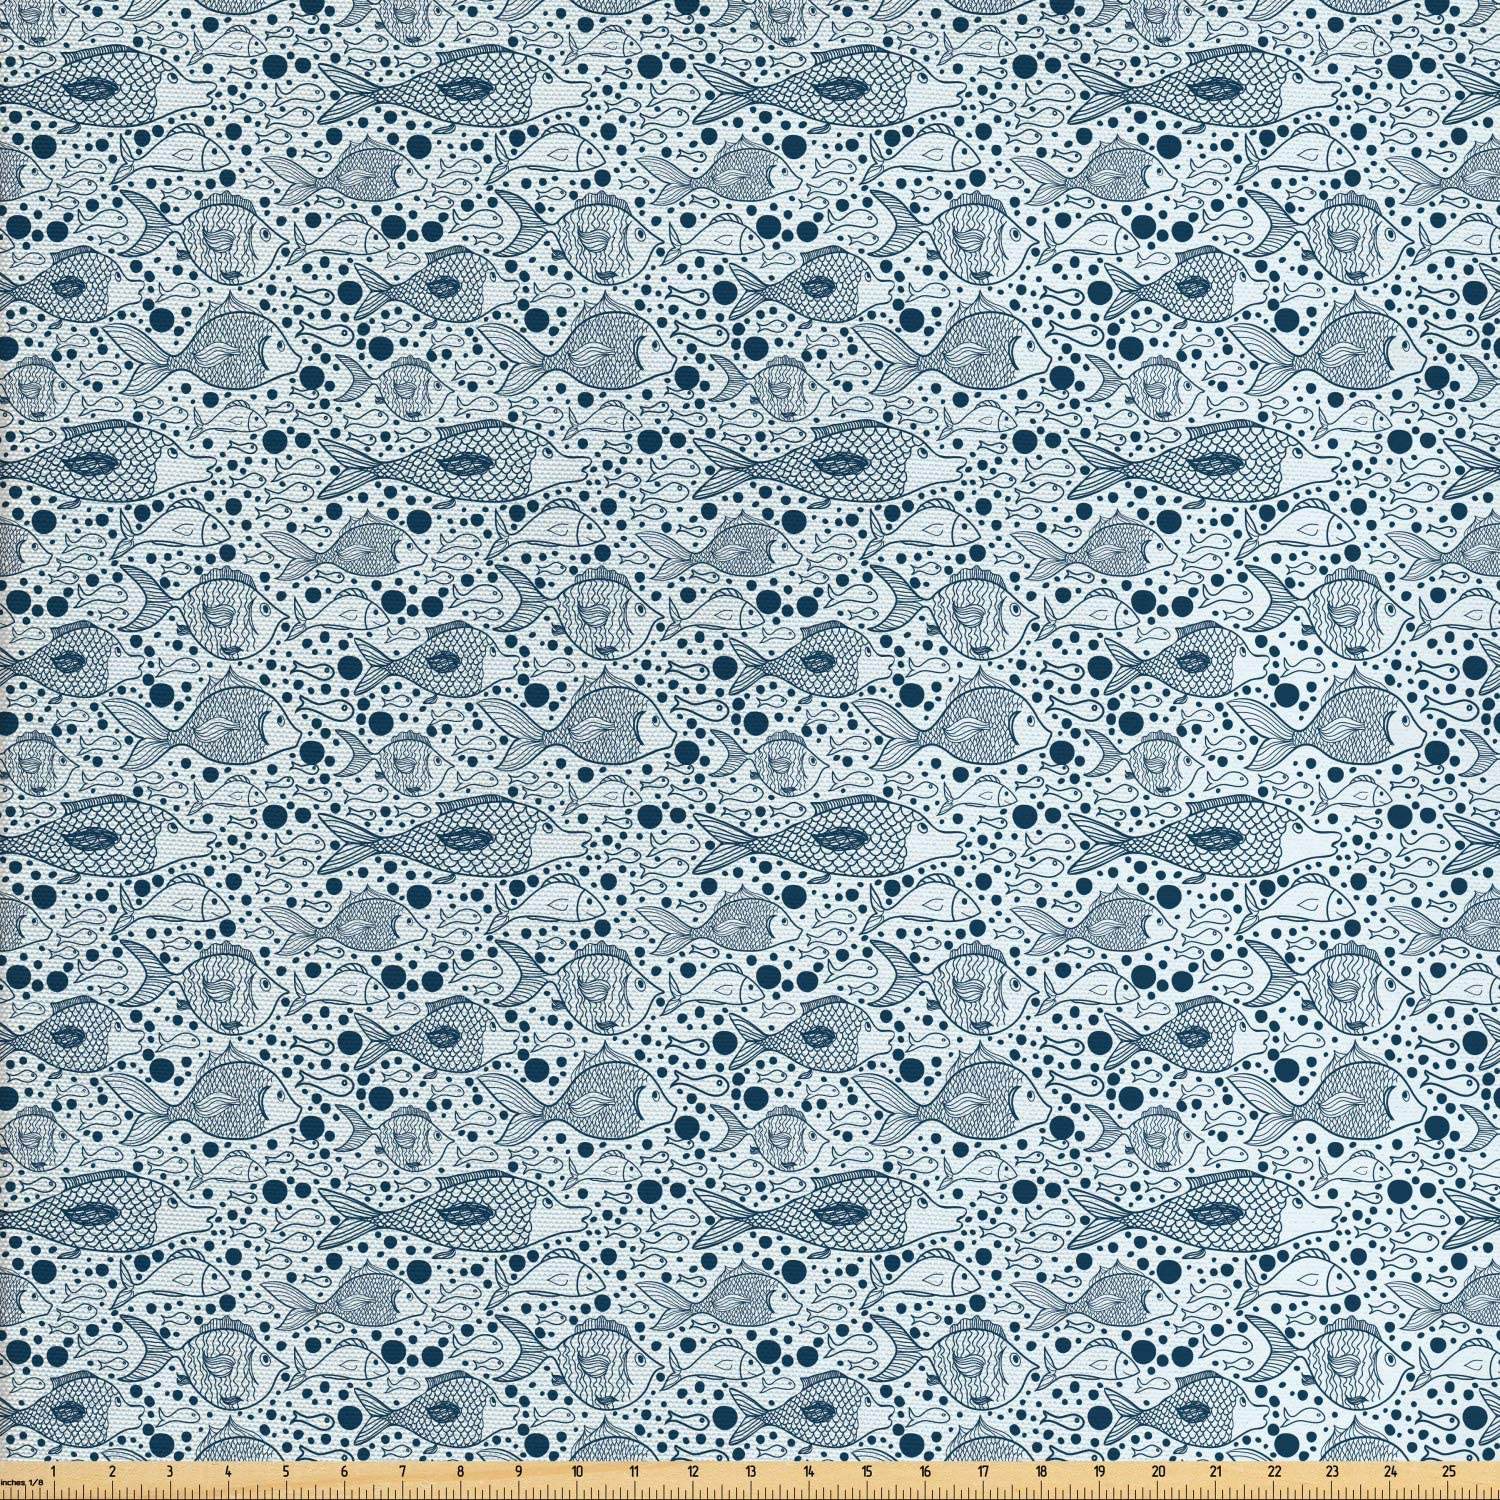 Ambesonne Blue Fabric by The Yard, Fish with Bubbles Underwater Wild Sea Life Funky Art Style Illustration Image, Decorative Fabric for Upholstery and Home Accents, 1 Yard, Blue